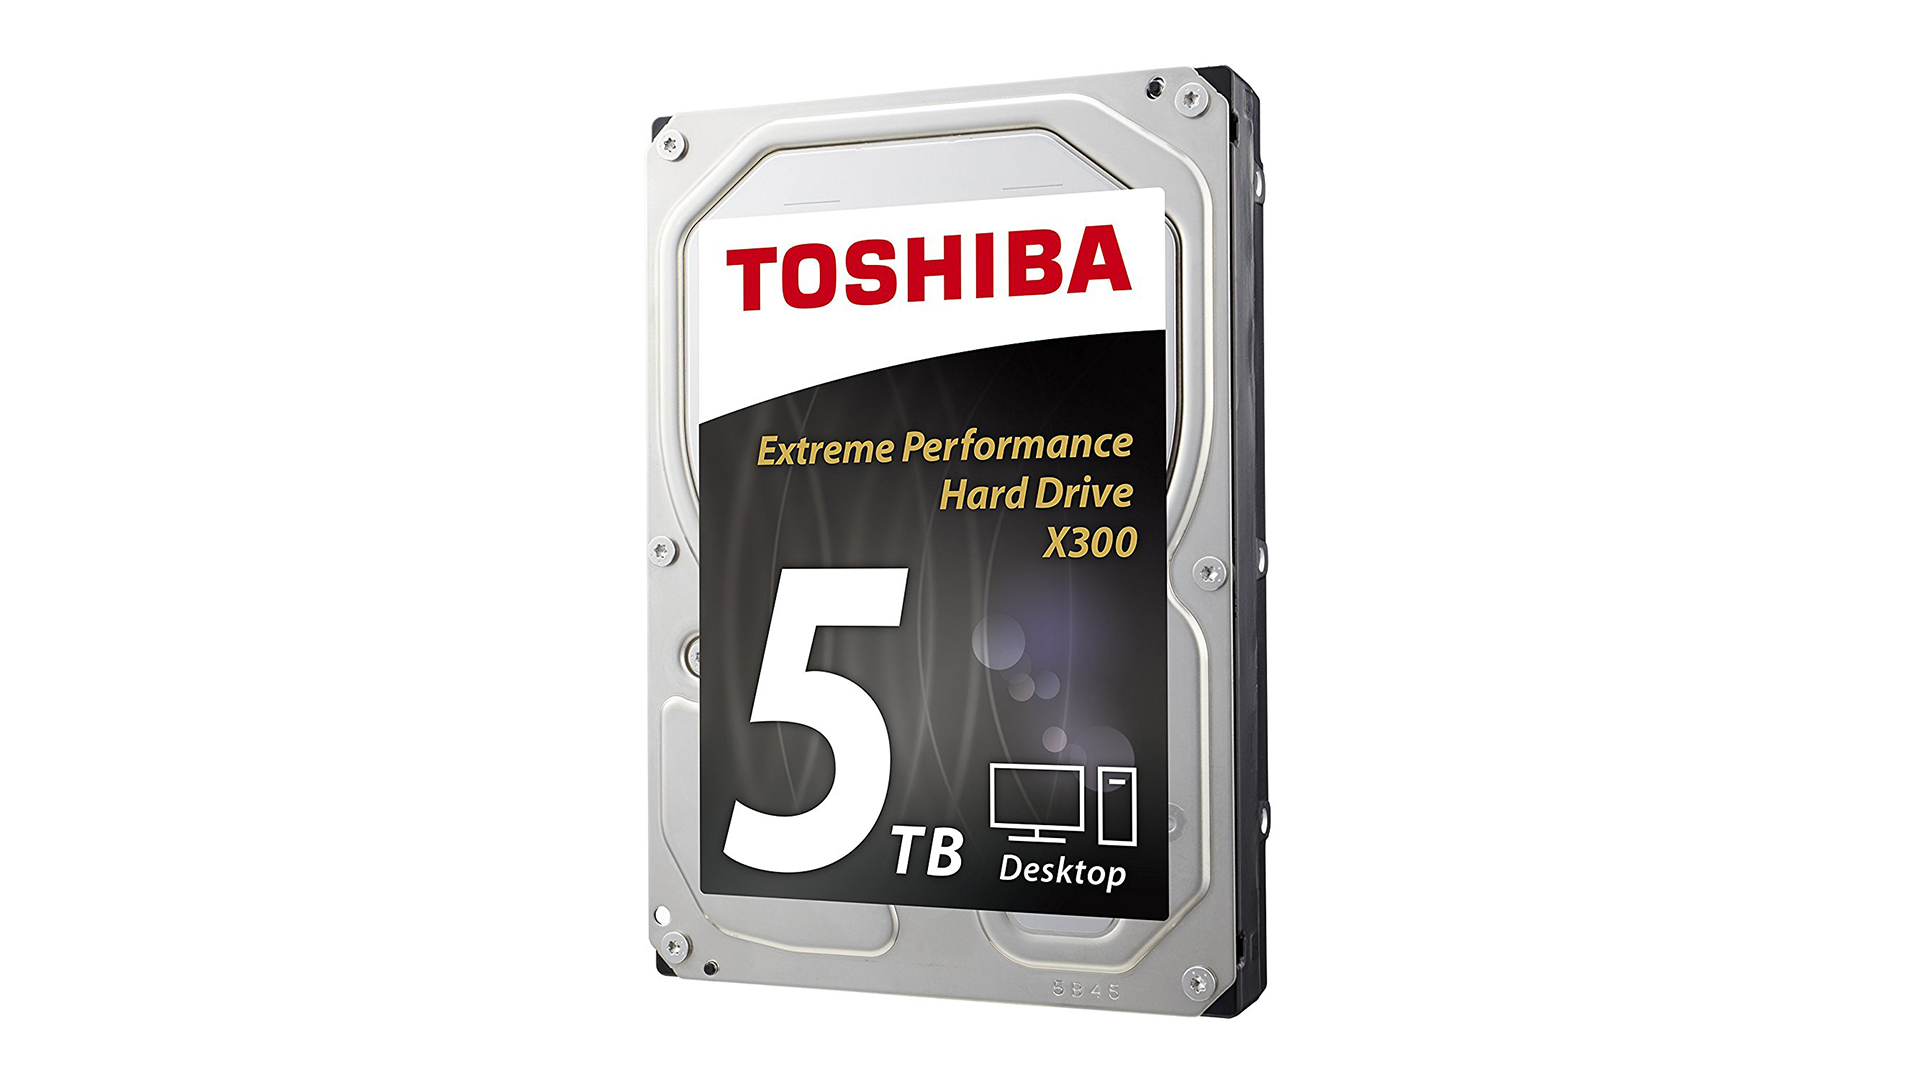 Best high capacity hard drive: Toshiba X300